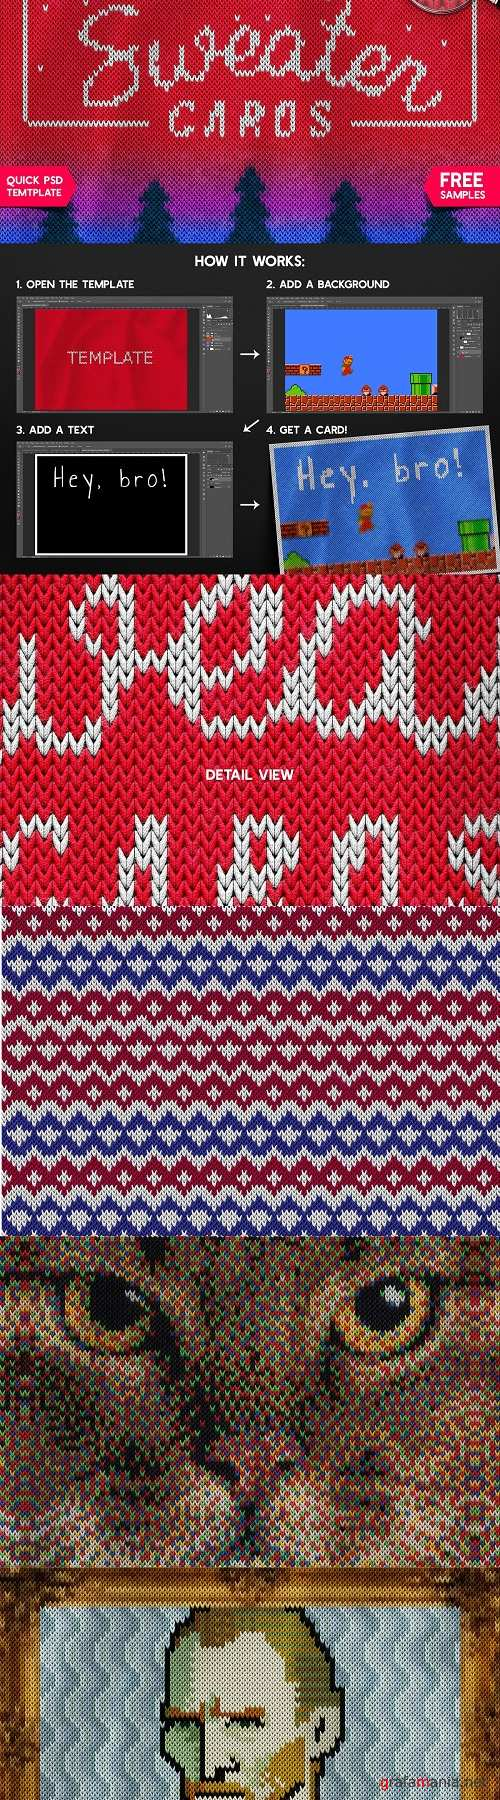 Christmas Sweater Photoshop Template - 3143312